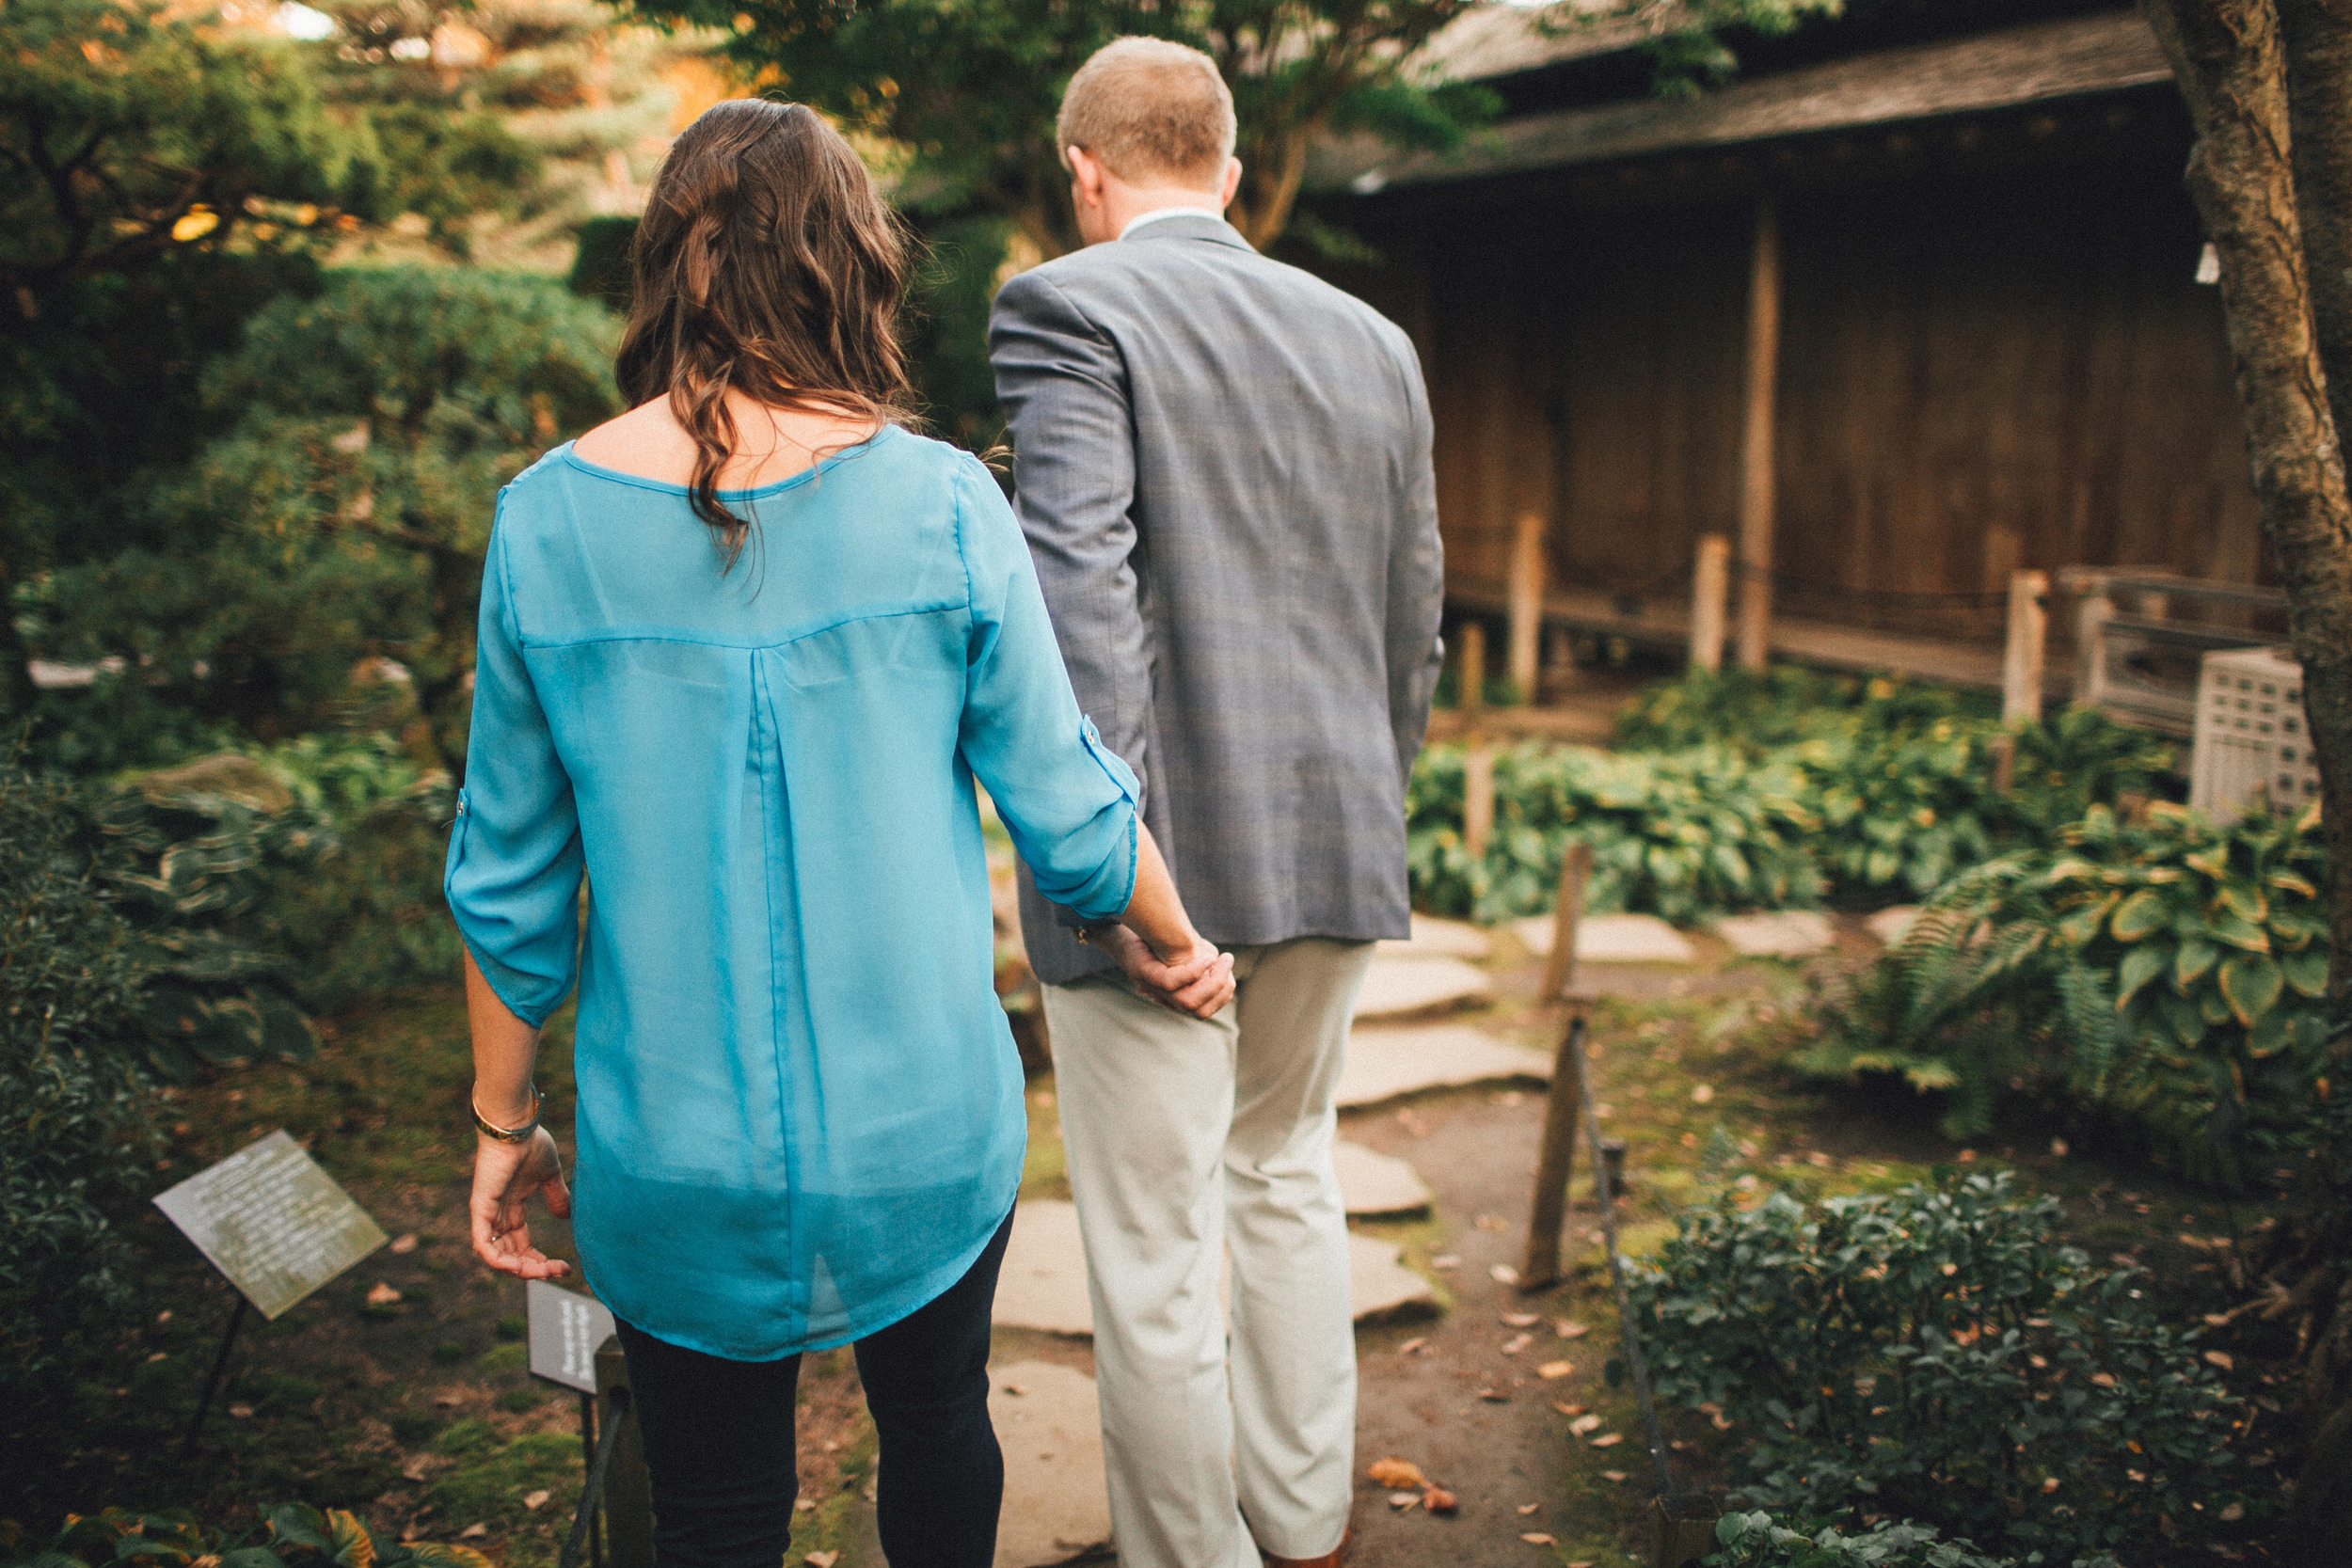 mayden photography_chicago botanical gardens engagement photo-2.jpg